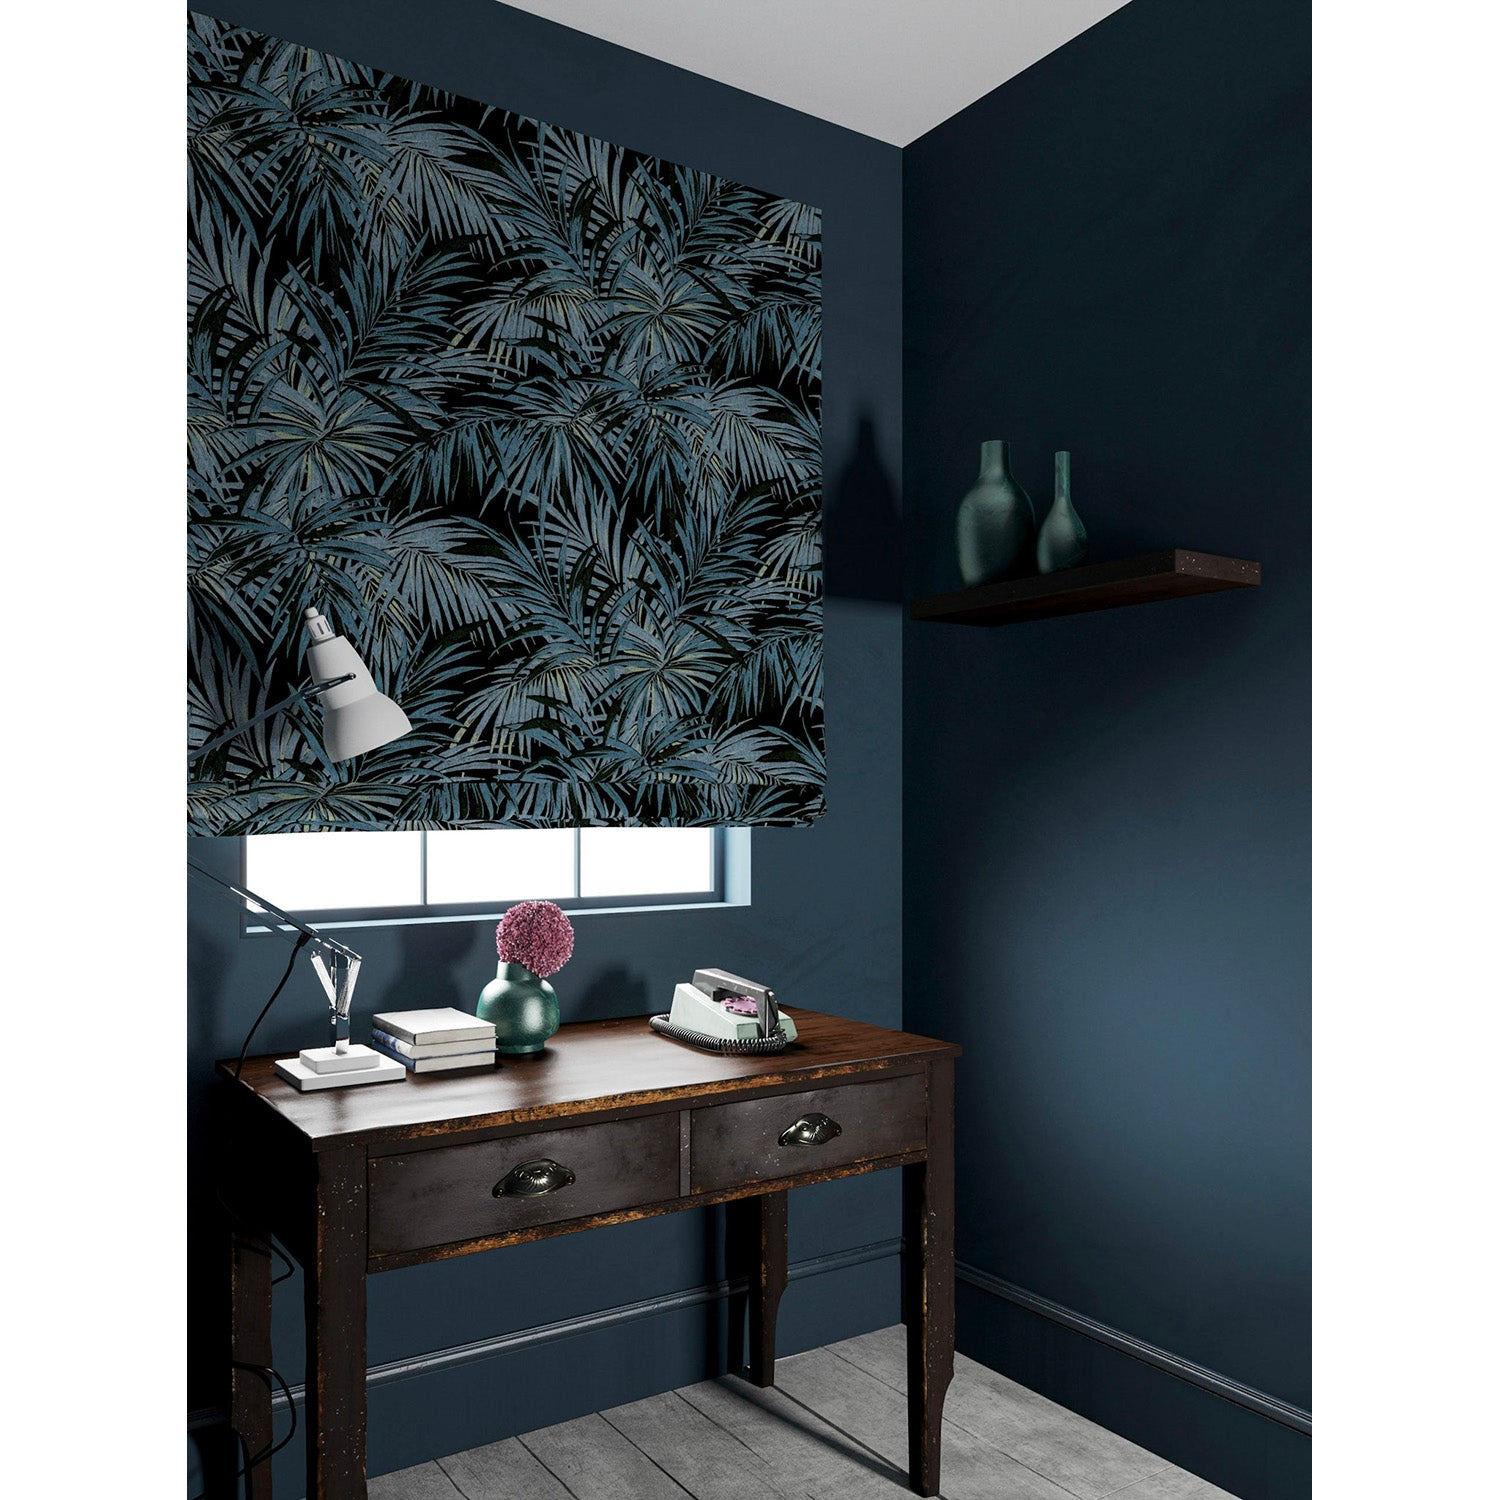 Velvet blind in a smokey blue coloured velvet fabric with stain resistant finish and palm tree leaf design